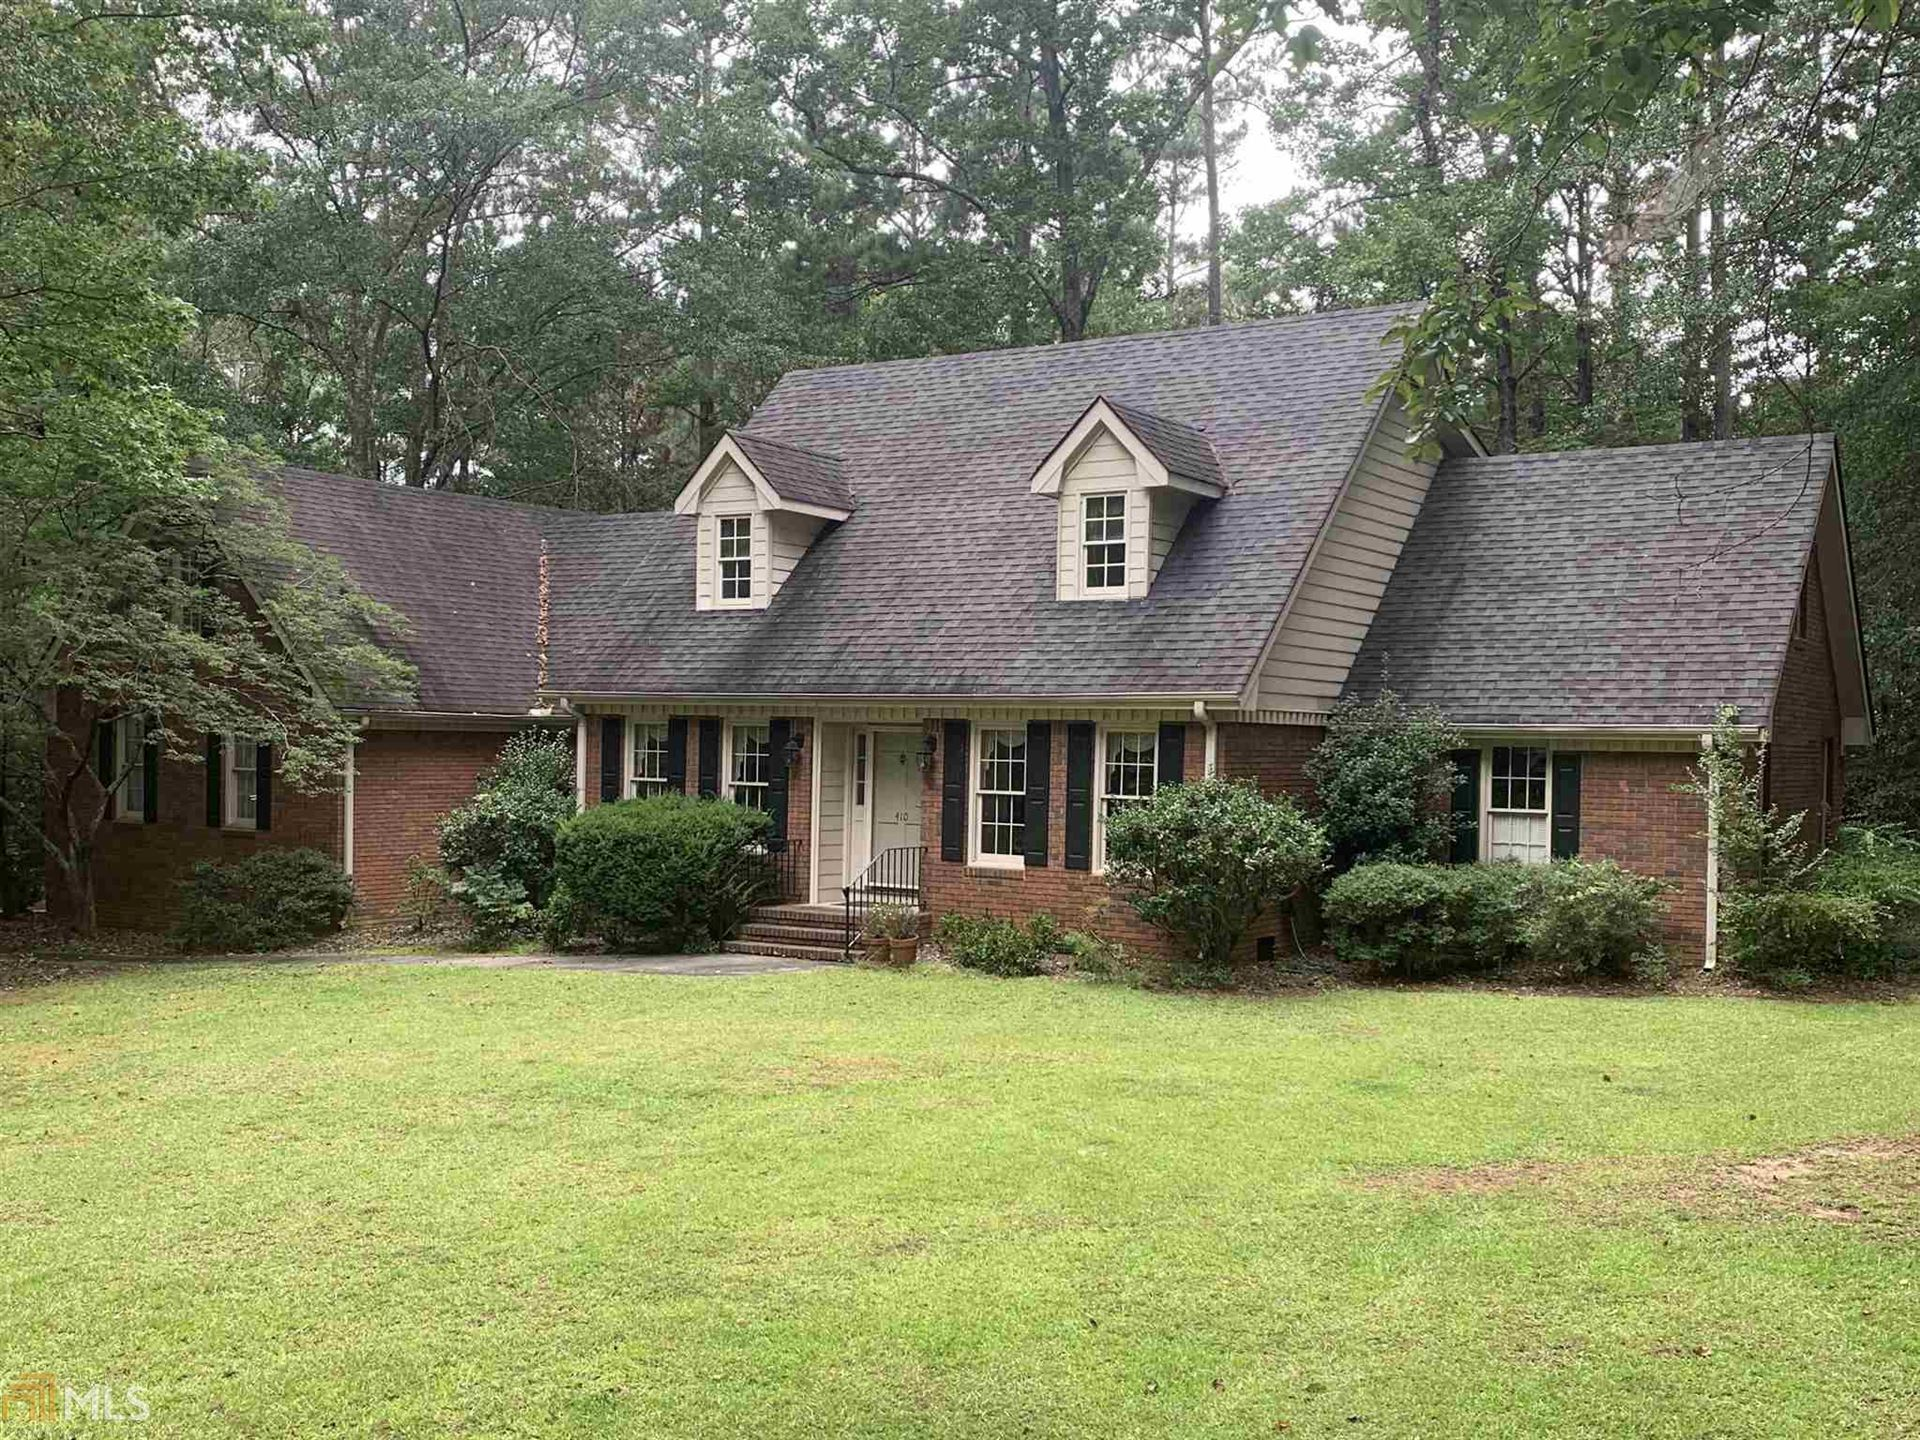 410 Audubon Cir, Griffin, GA 30223 - #: 8845735